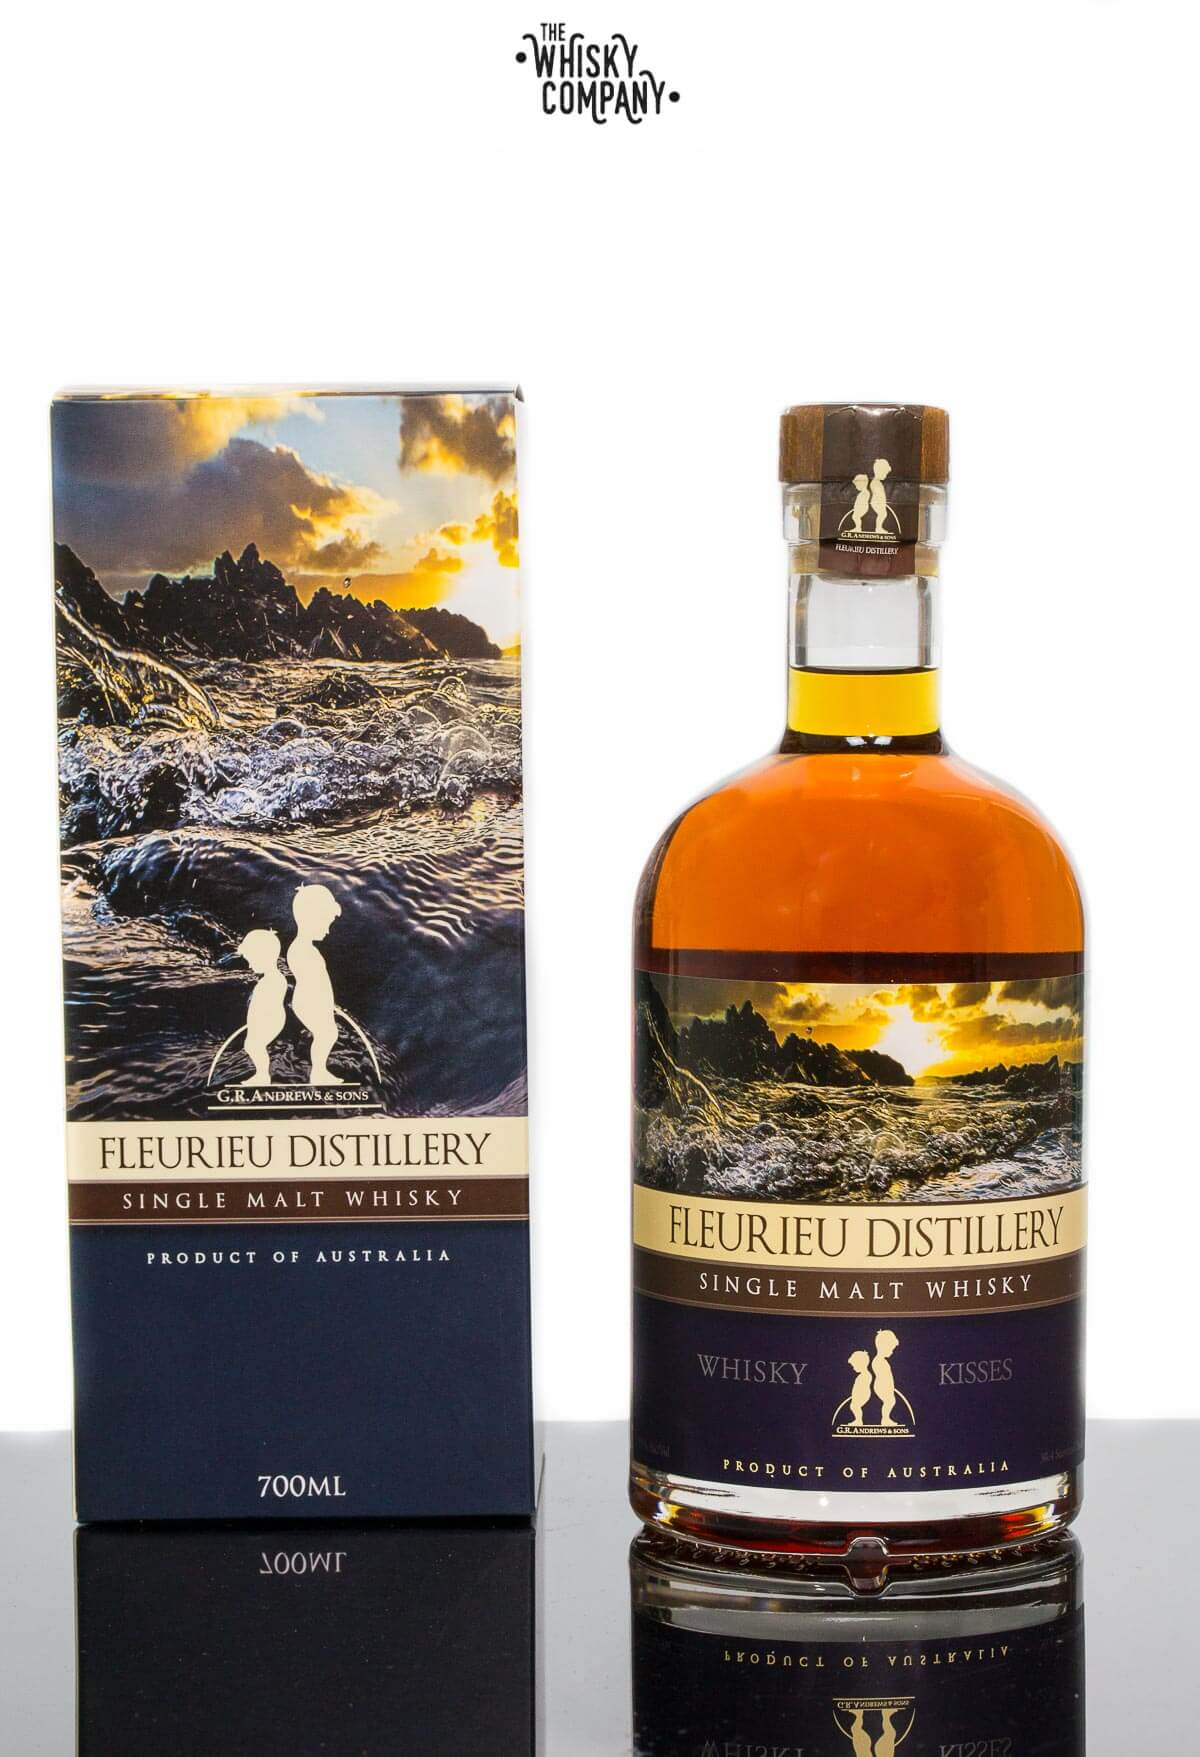 Fleurieu Distillery Whisky Kisses Limited Release Single Malt Whisky (700ml)